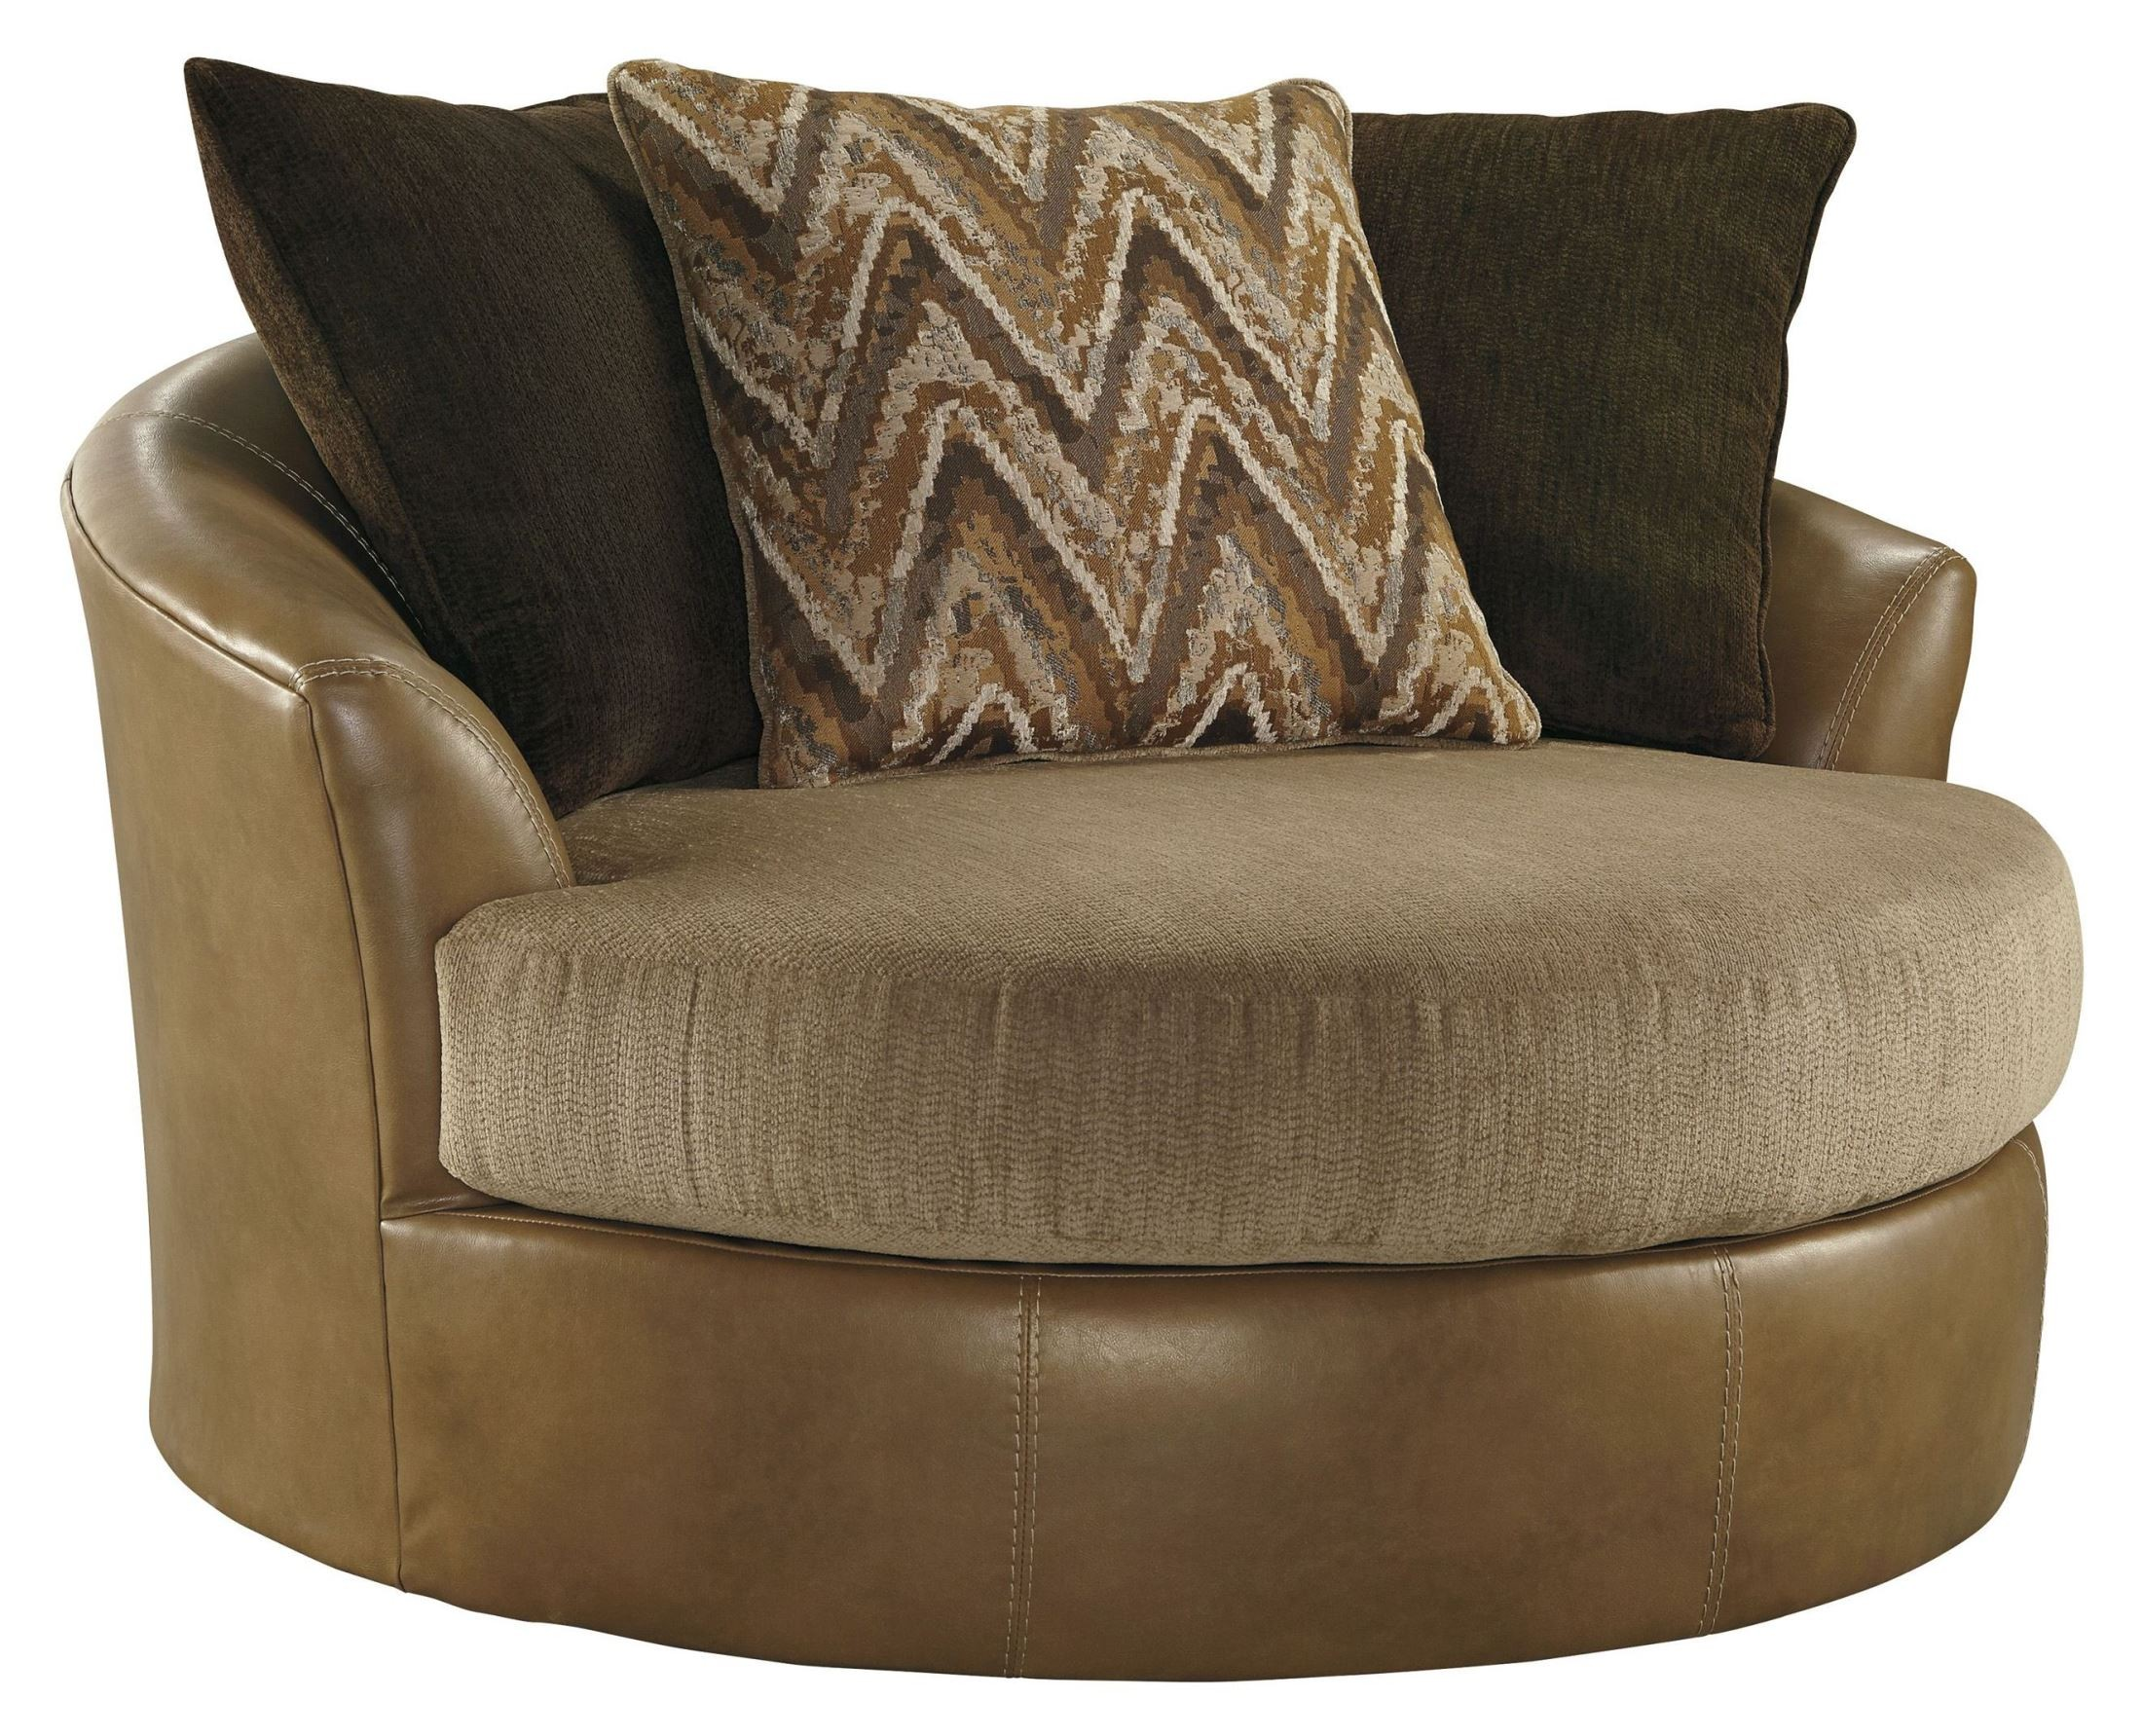 Declain Sand Oversized Swivel Accent Chair From Ashley